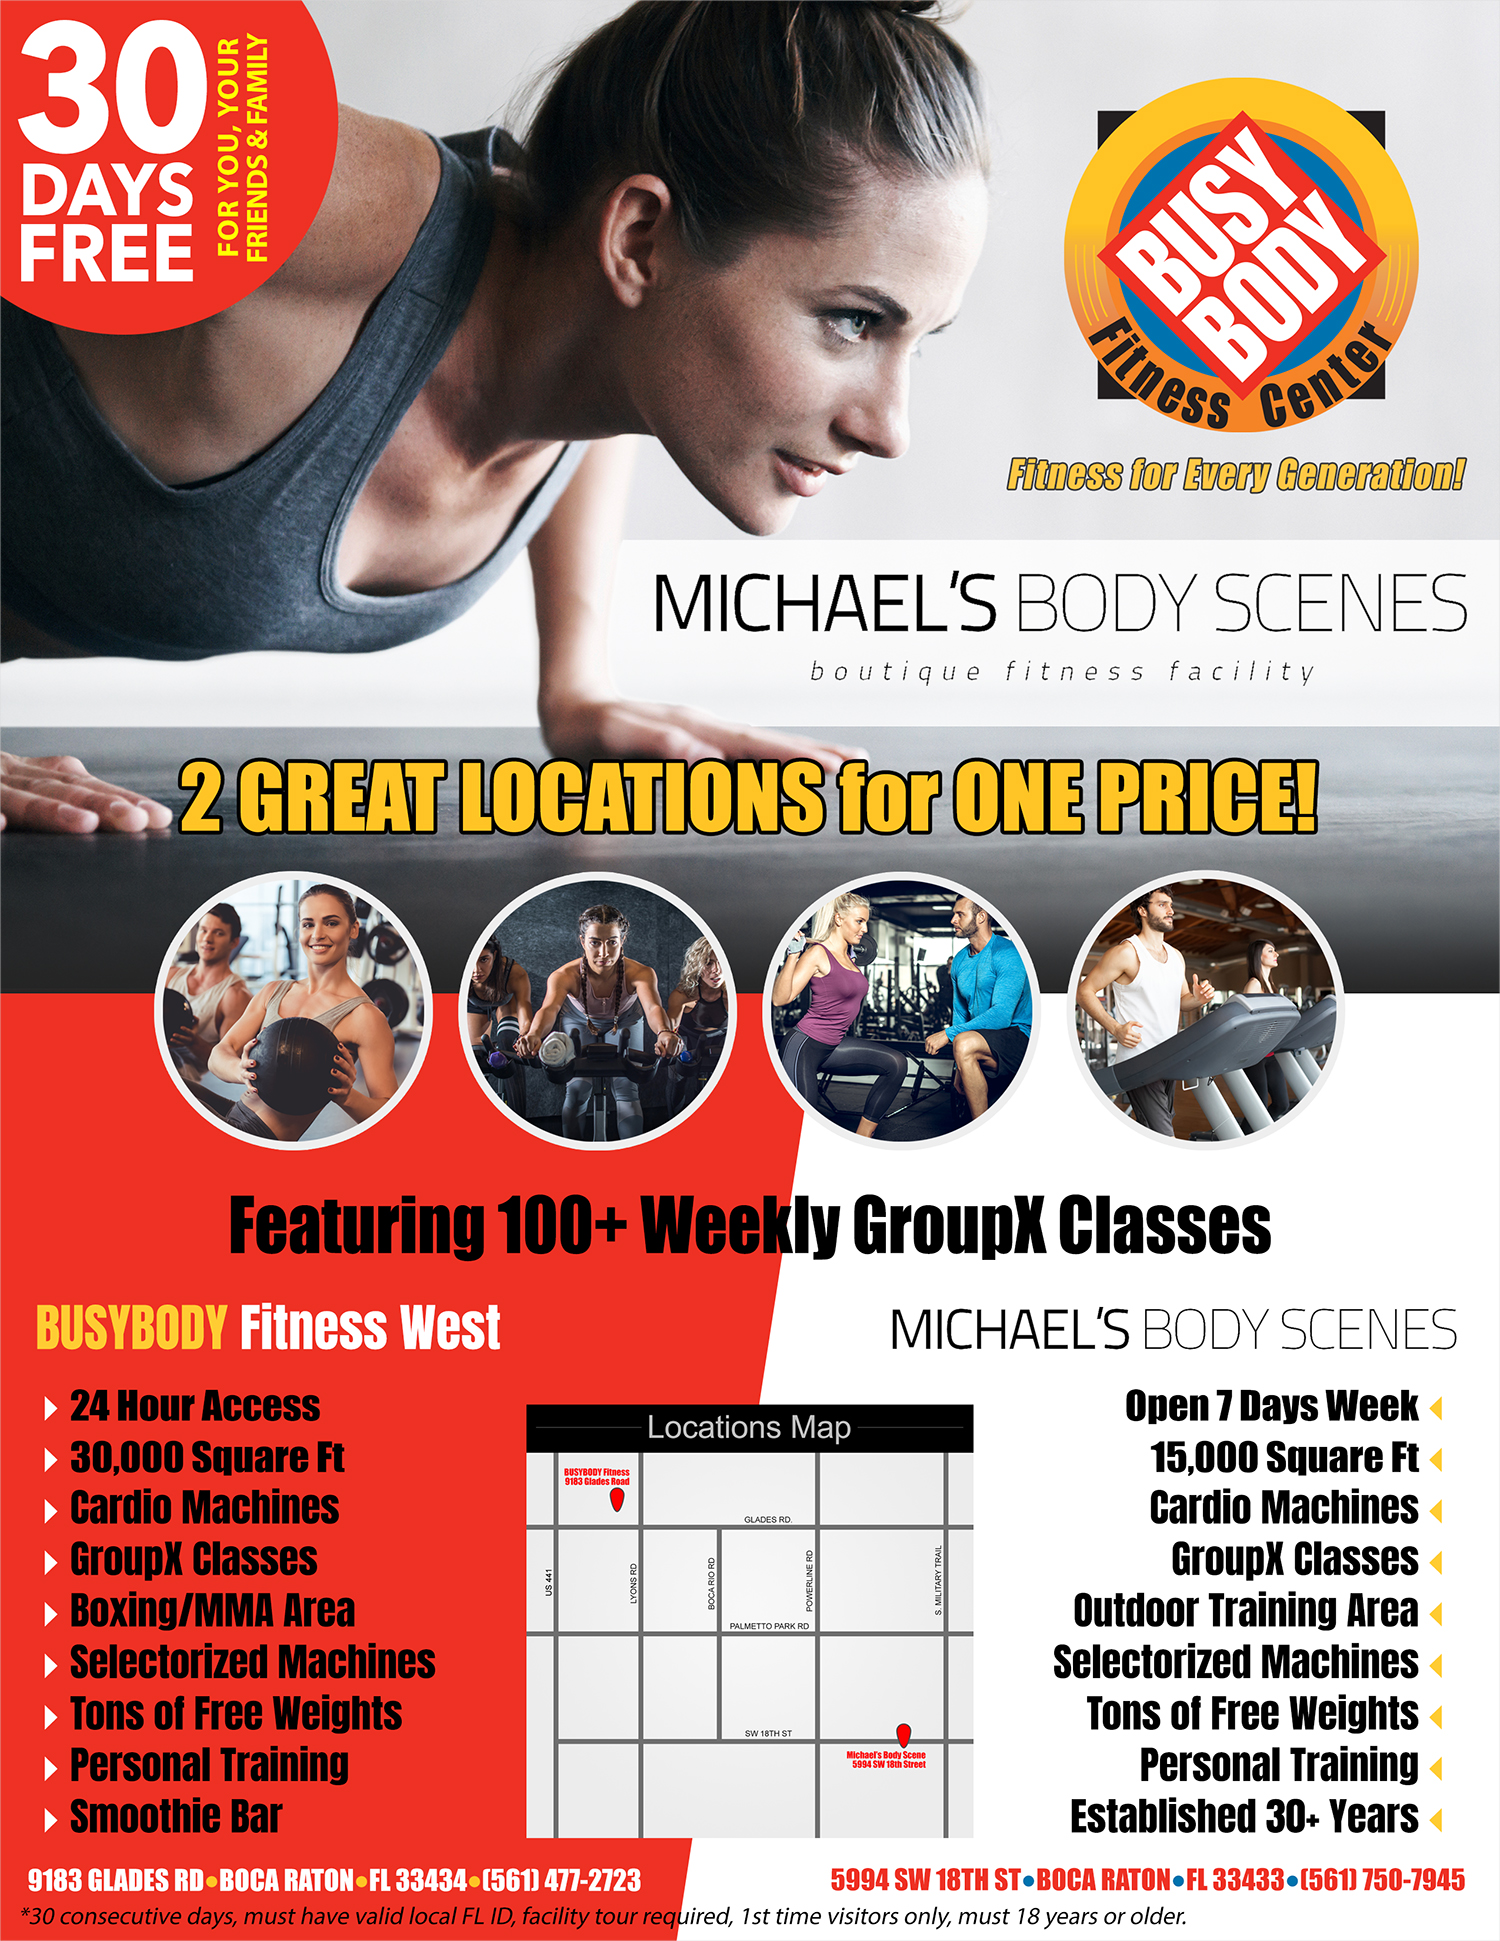 30 Days Free Flyer - 2 Great Locations